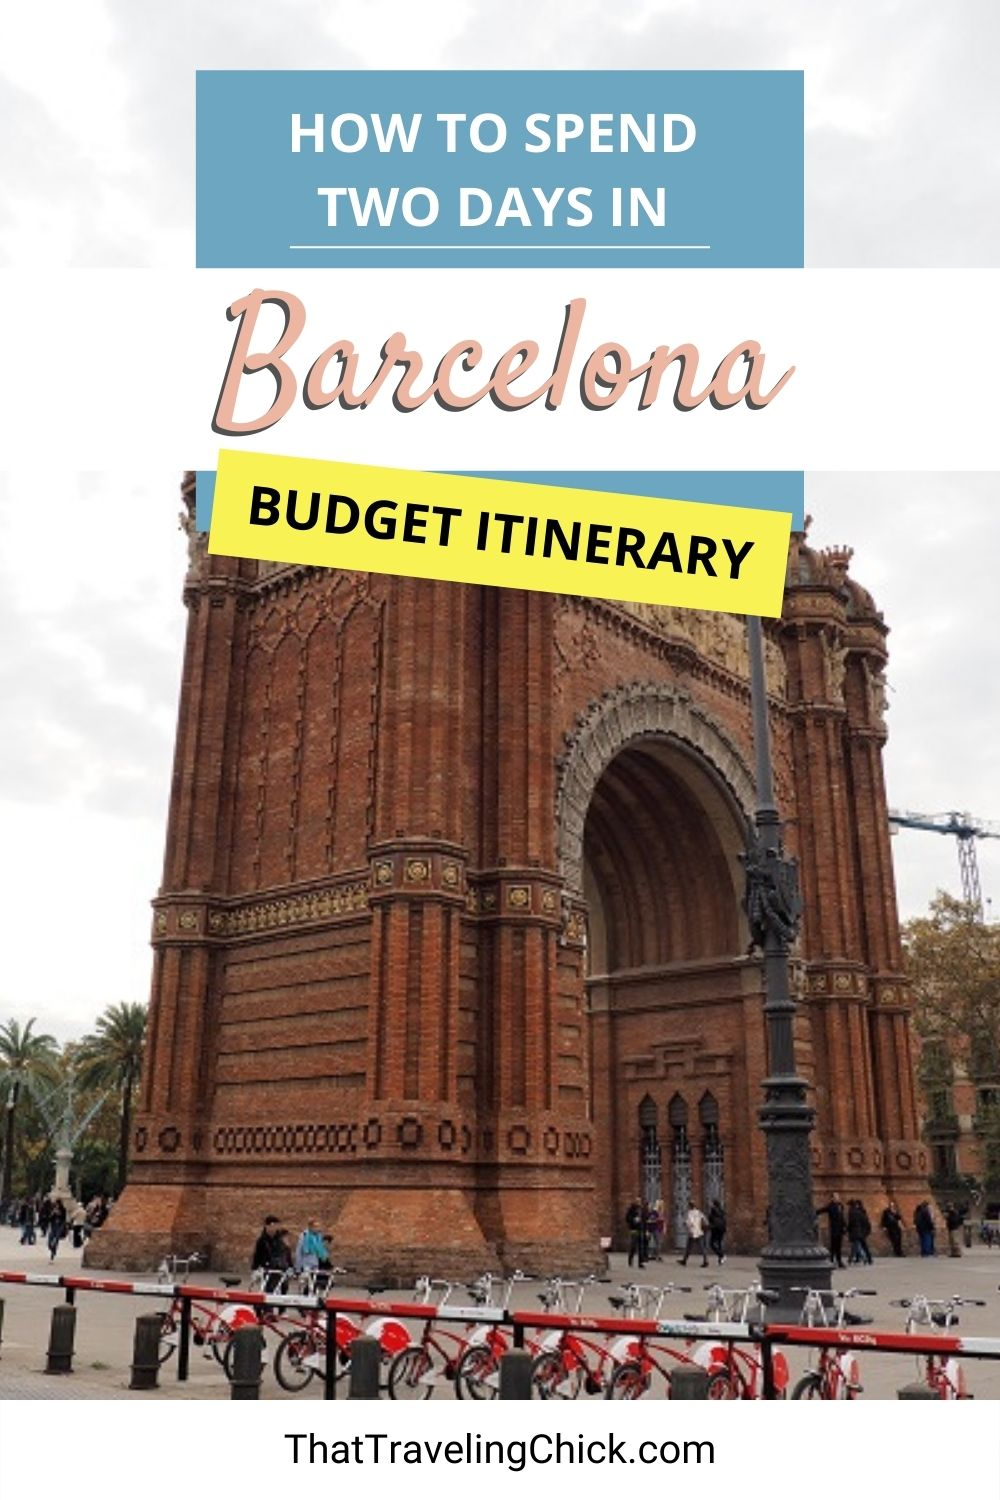 How to Spend Two Days In Barcelona